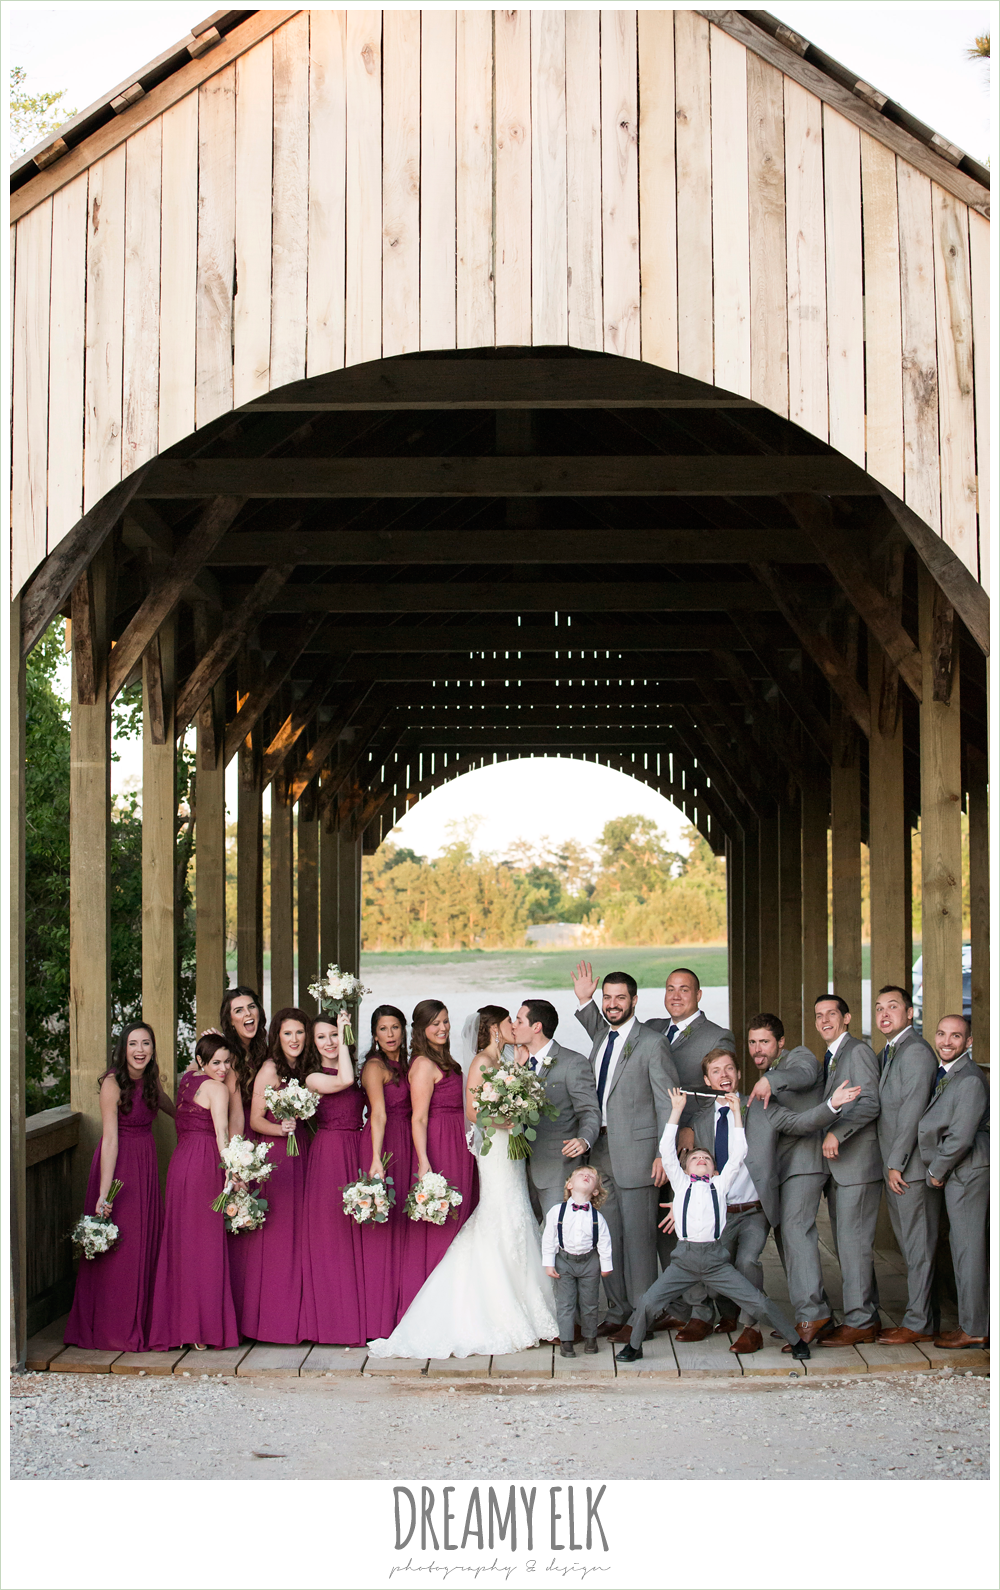 funny bridal party photo, bride and groom, sweetheart lace wedding dress, gray suit, mulberry bridesmaids dresses, rustic chic, spring wedding photo, big sky barn, montgomery, texas {dreamy elk photography and design}